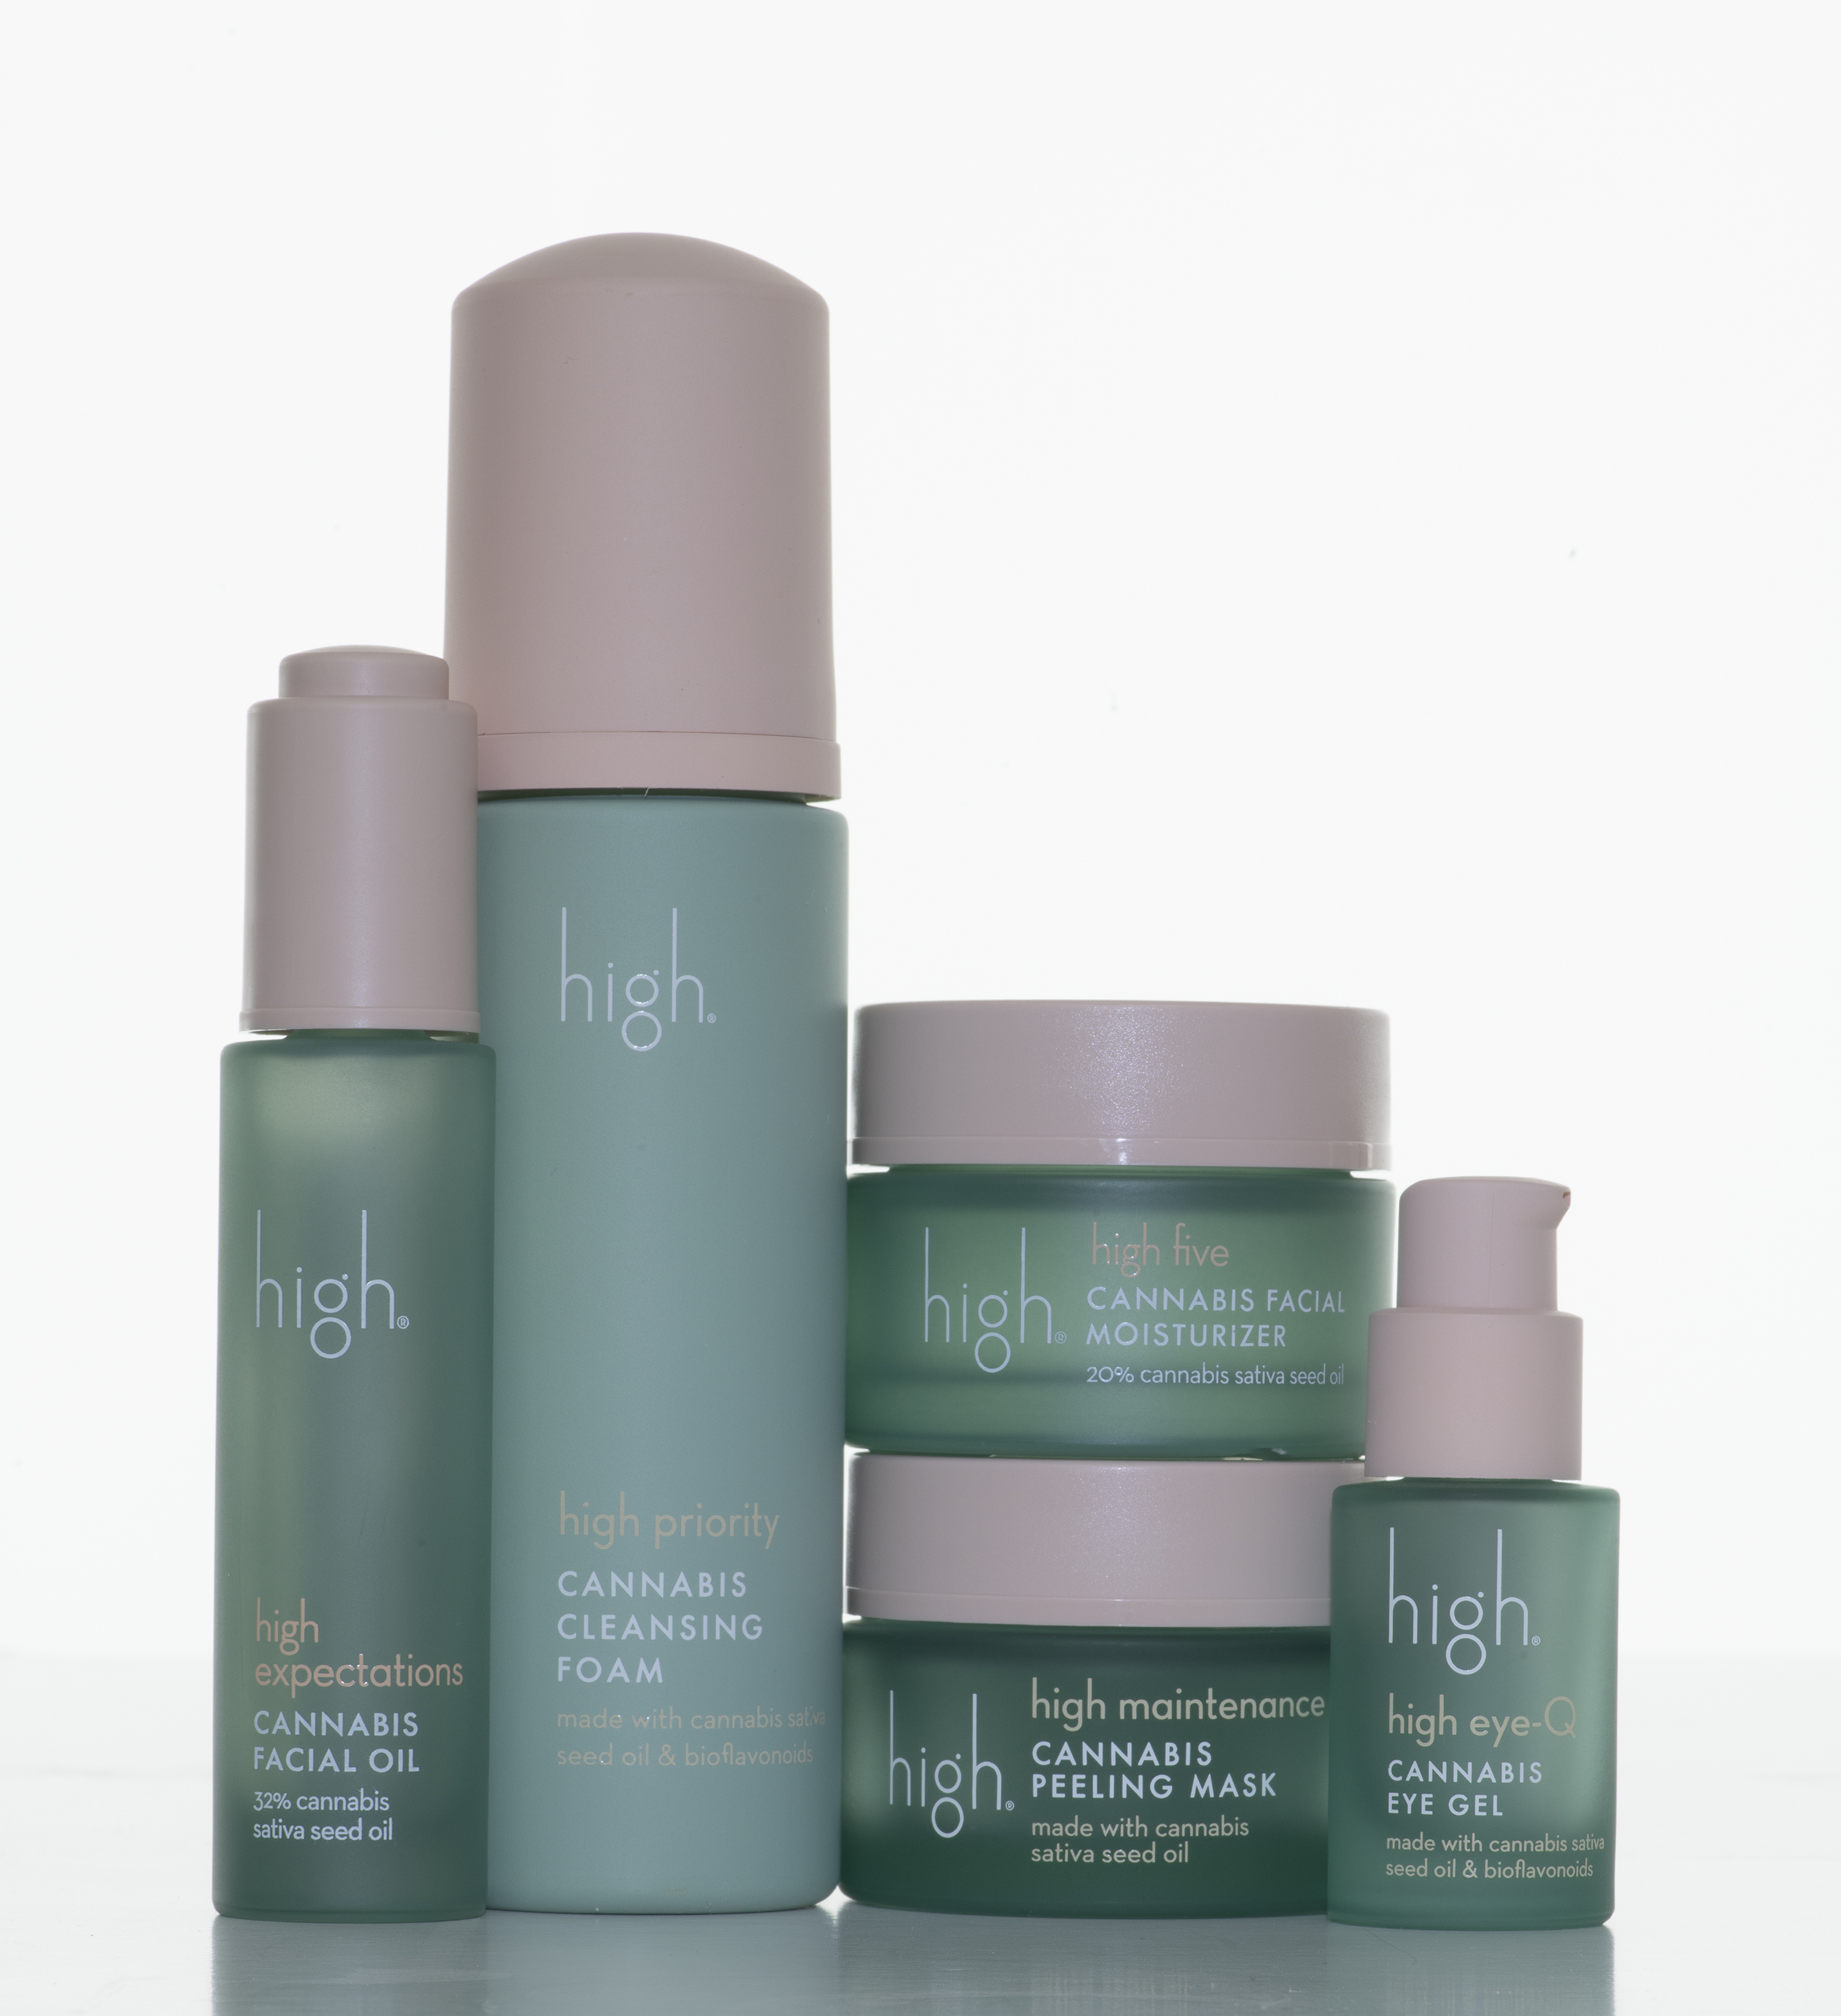 high Beauty: A Cannabis Sativa Seed Oil-Based Beauty Line